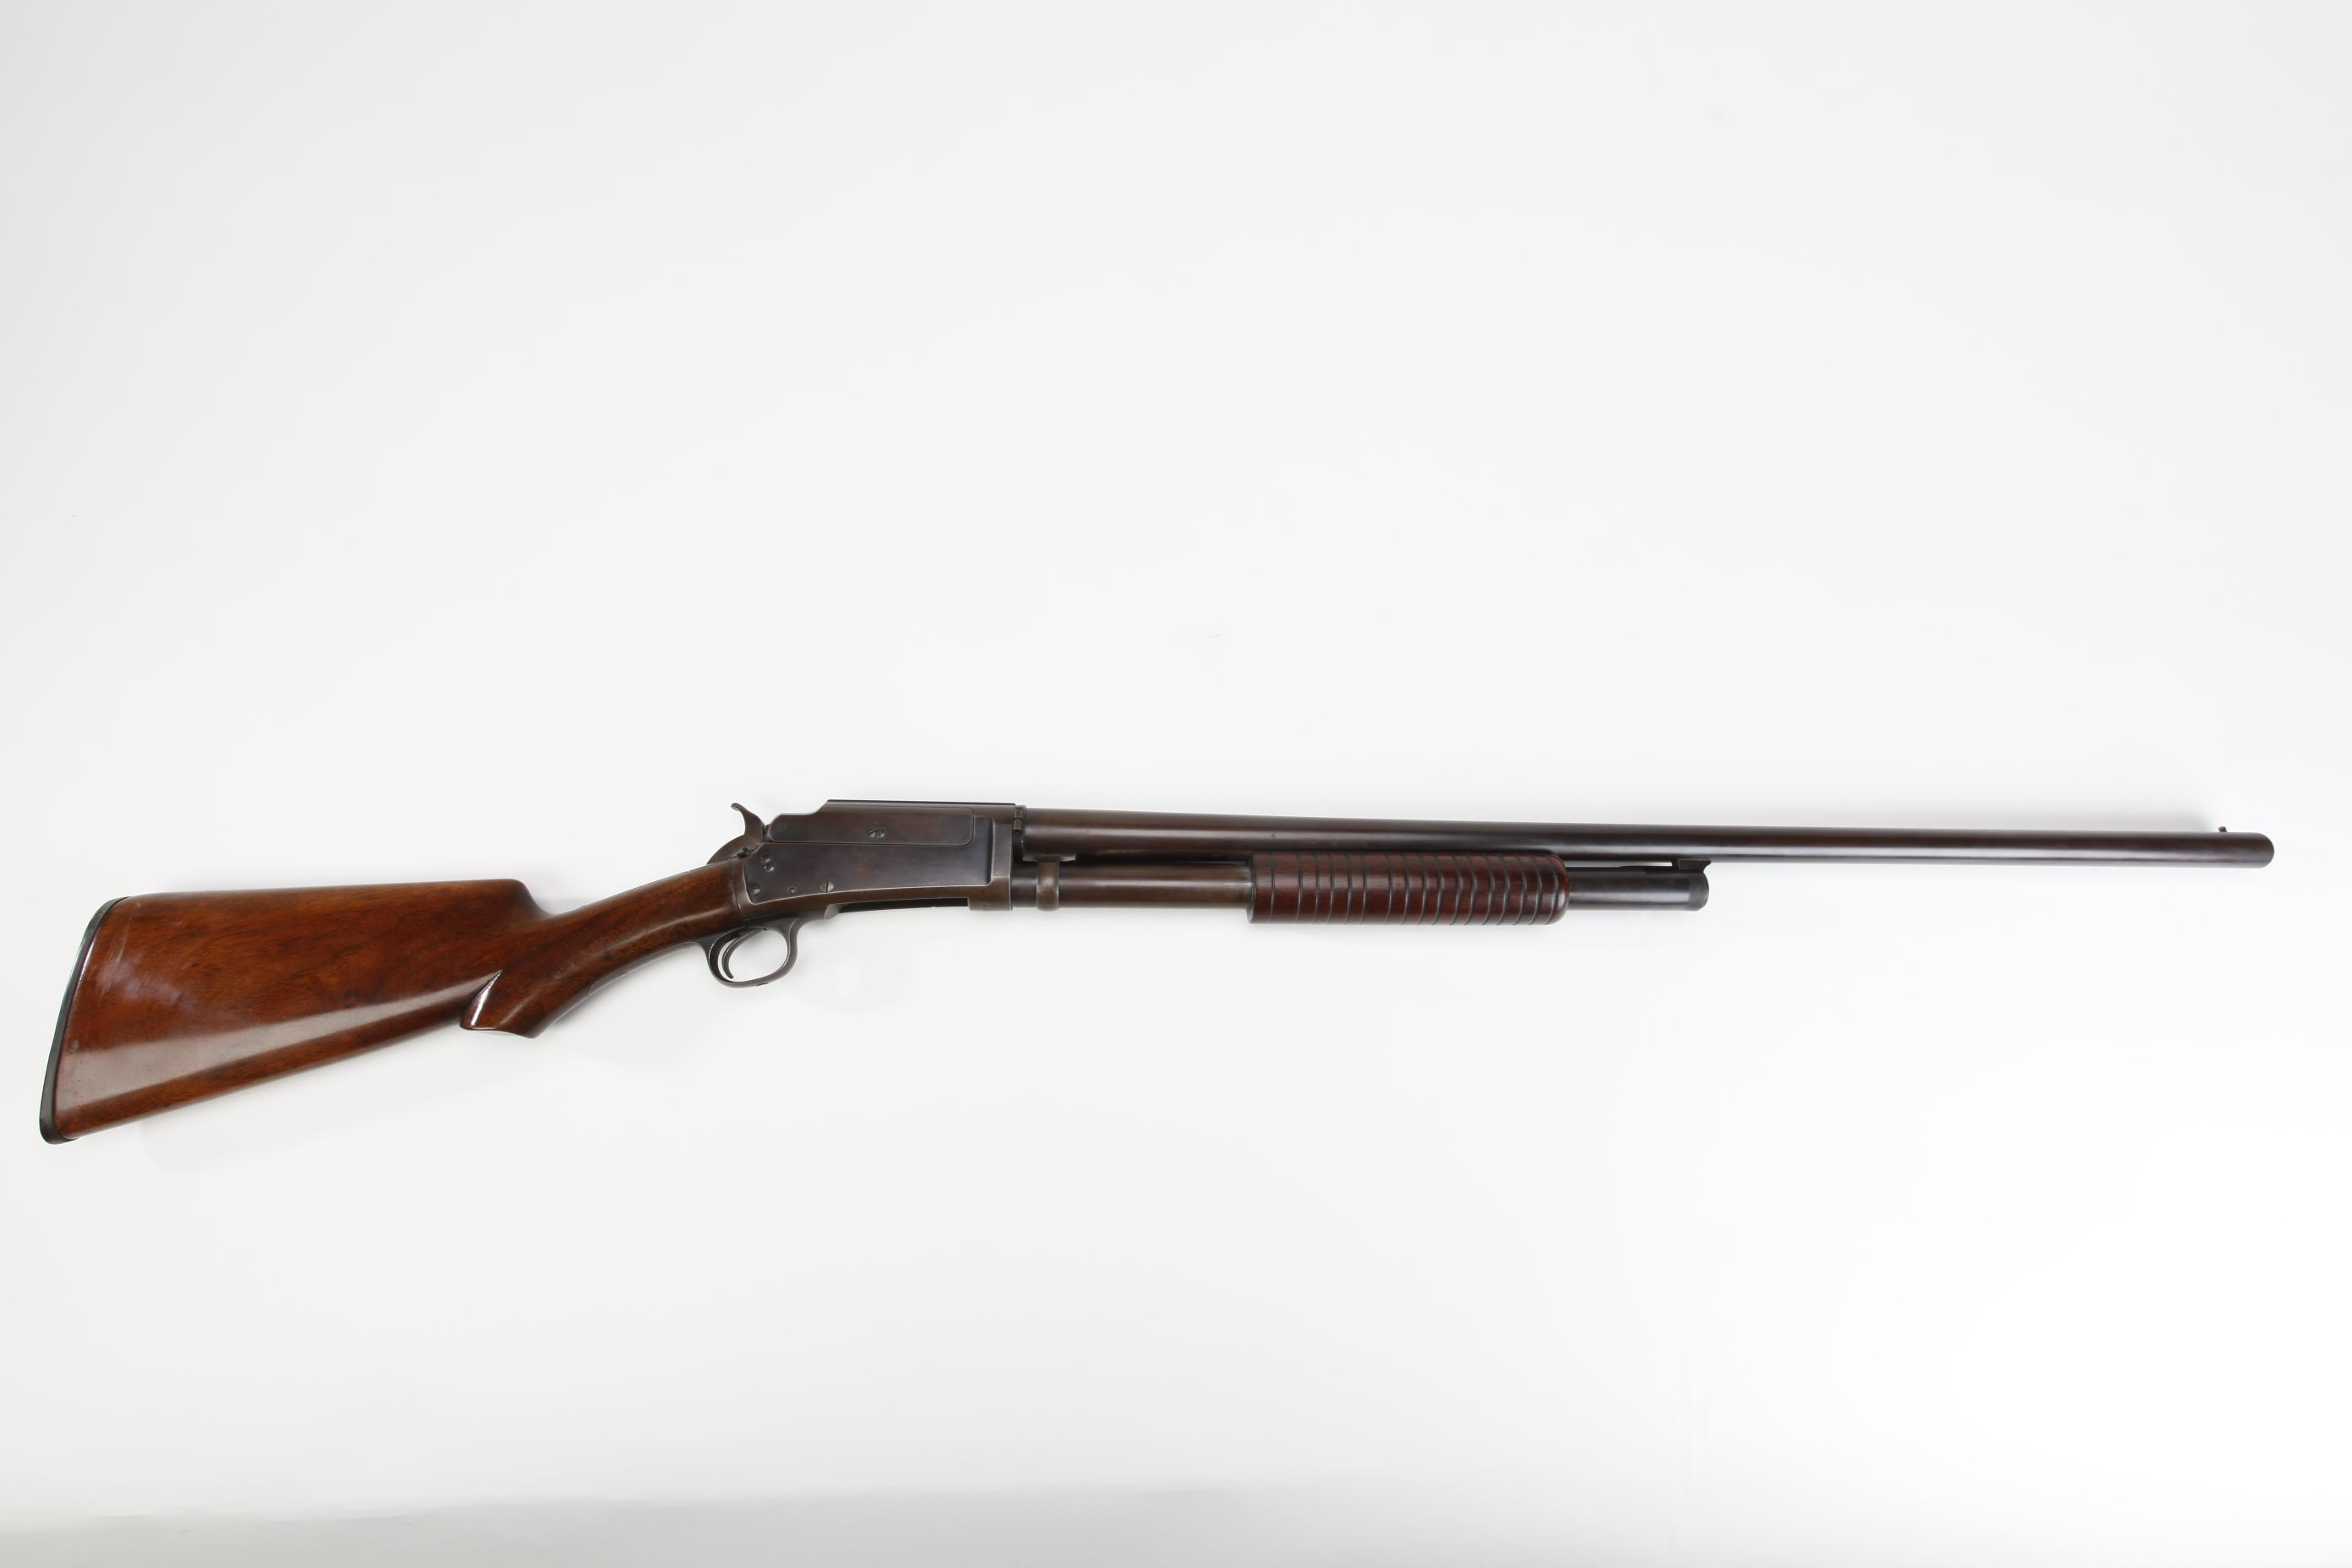 Marlin Model 19 Slide Action Shotgun